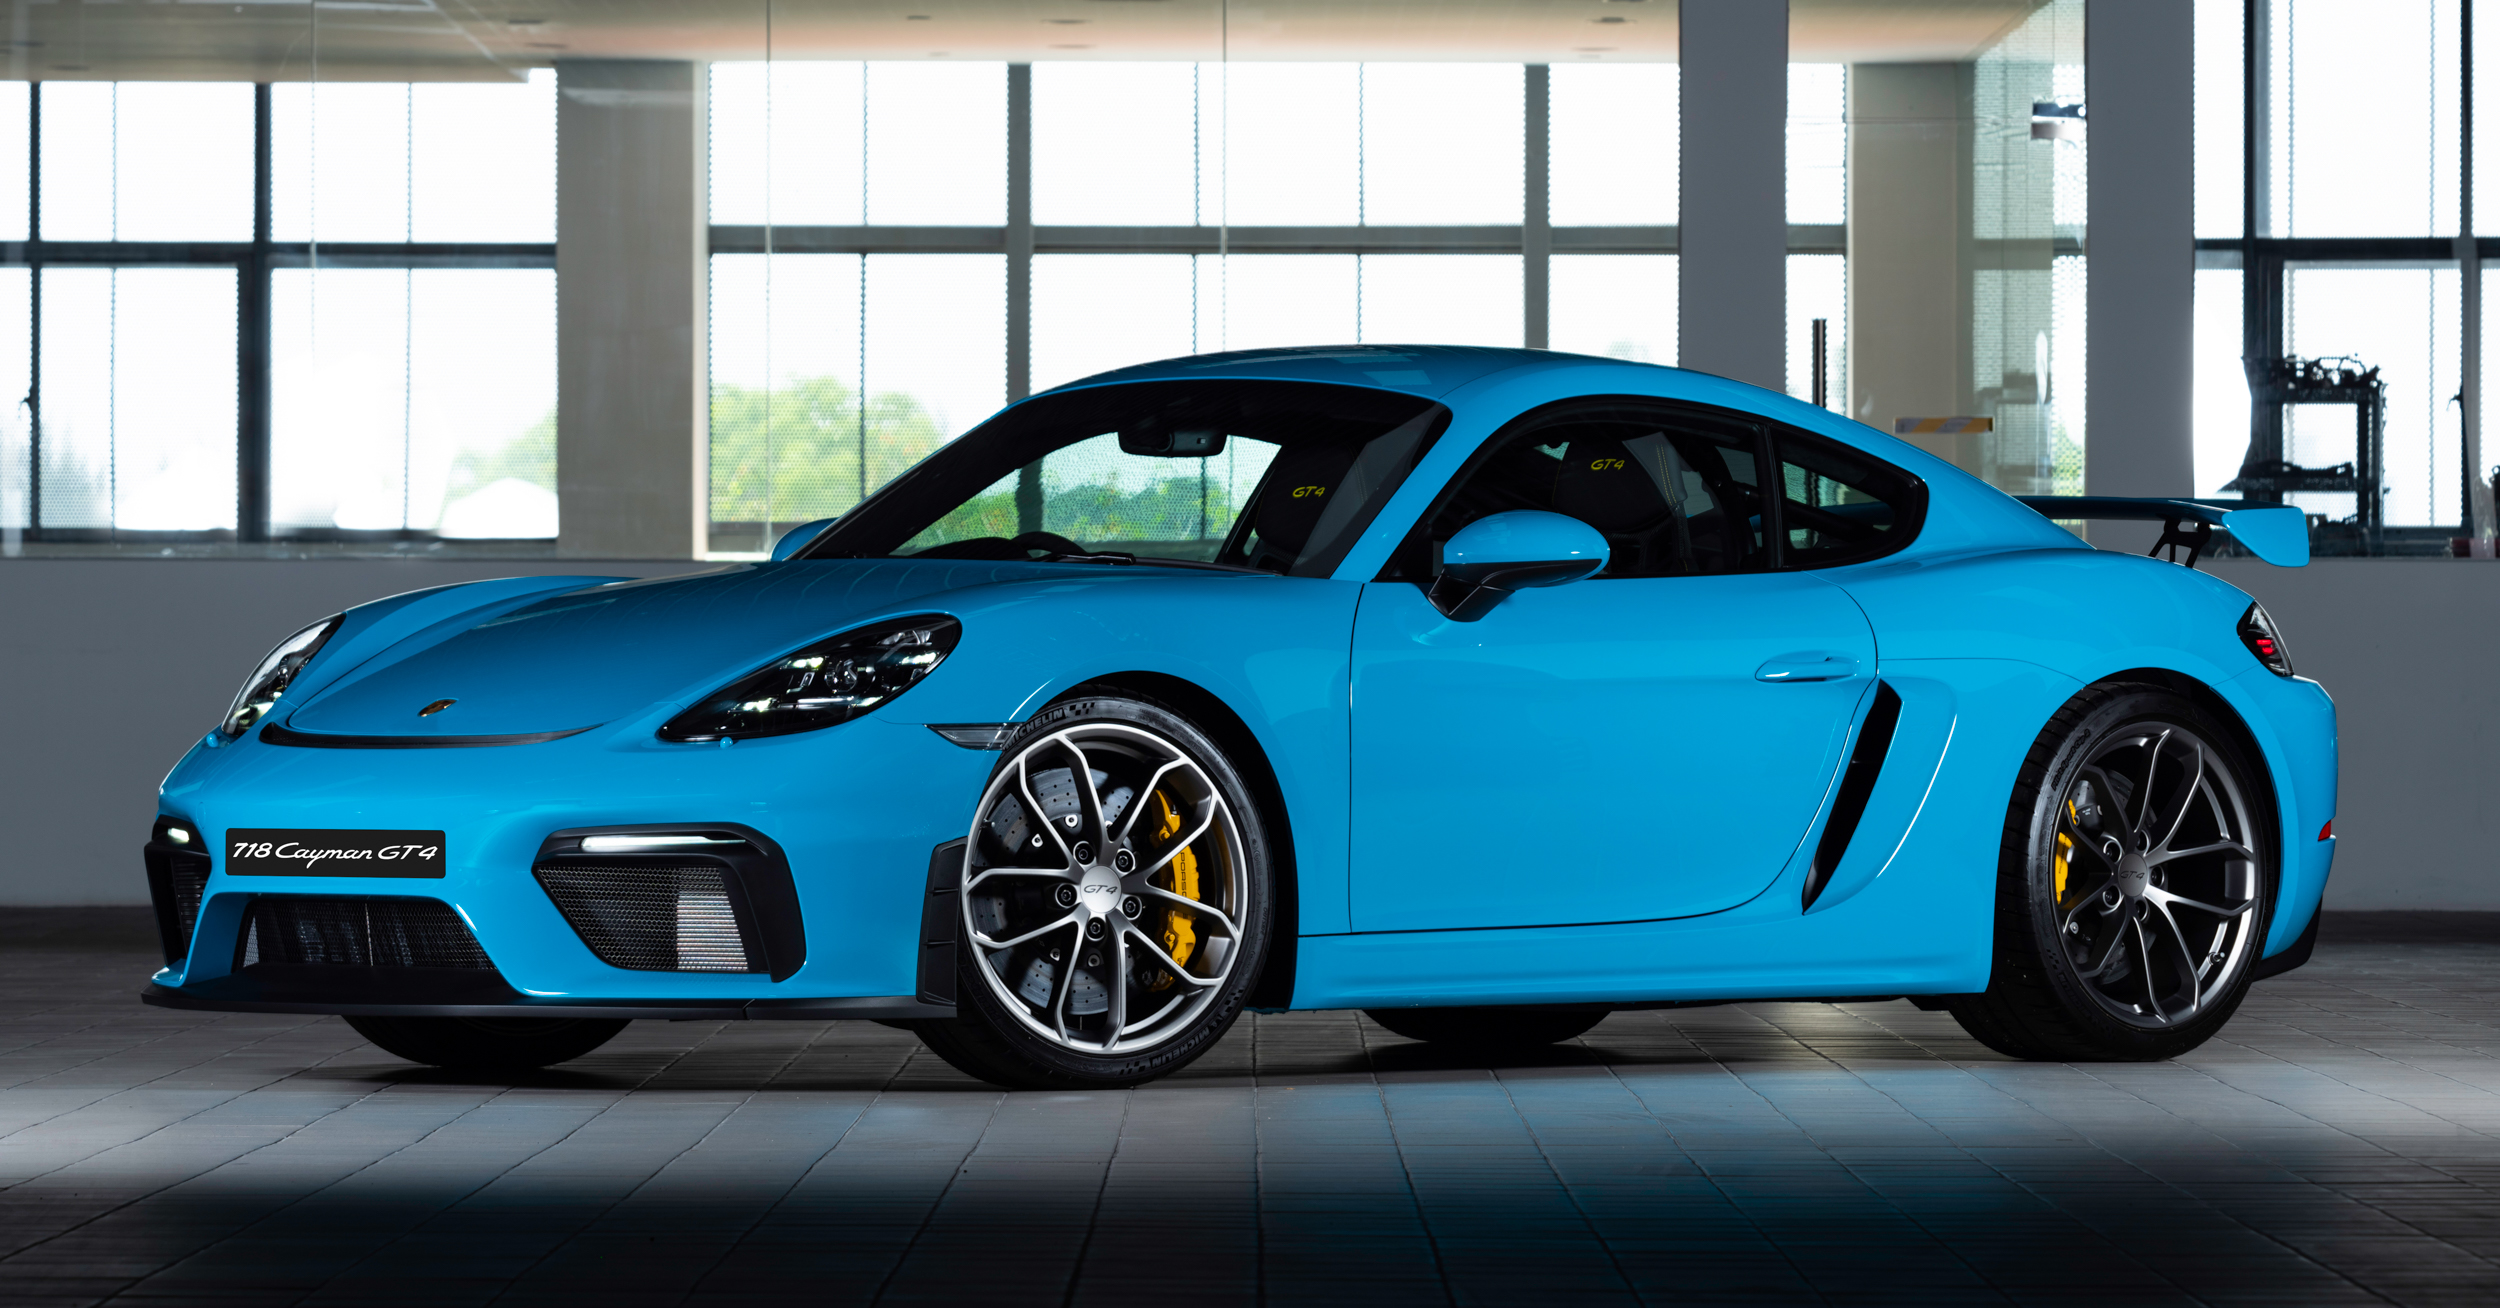 2020 Porsche 718 Cayman Gt4 Boxster Spyder Launched In Malaysia